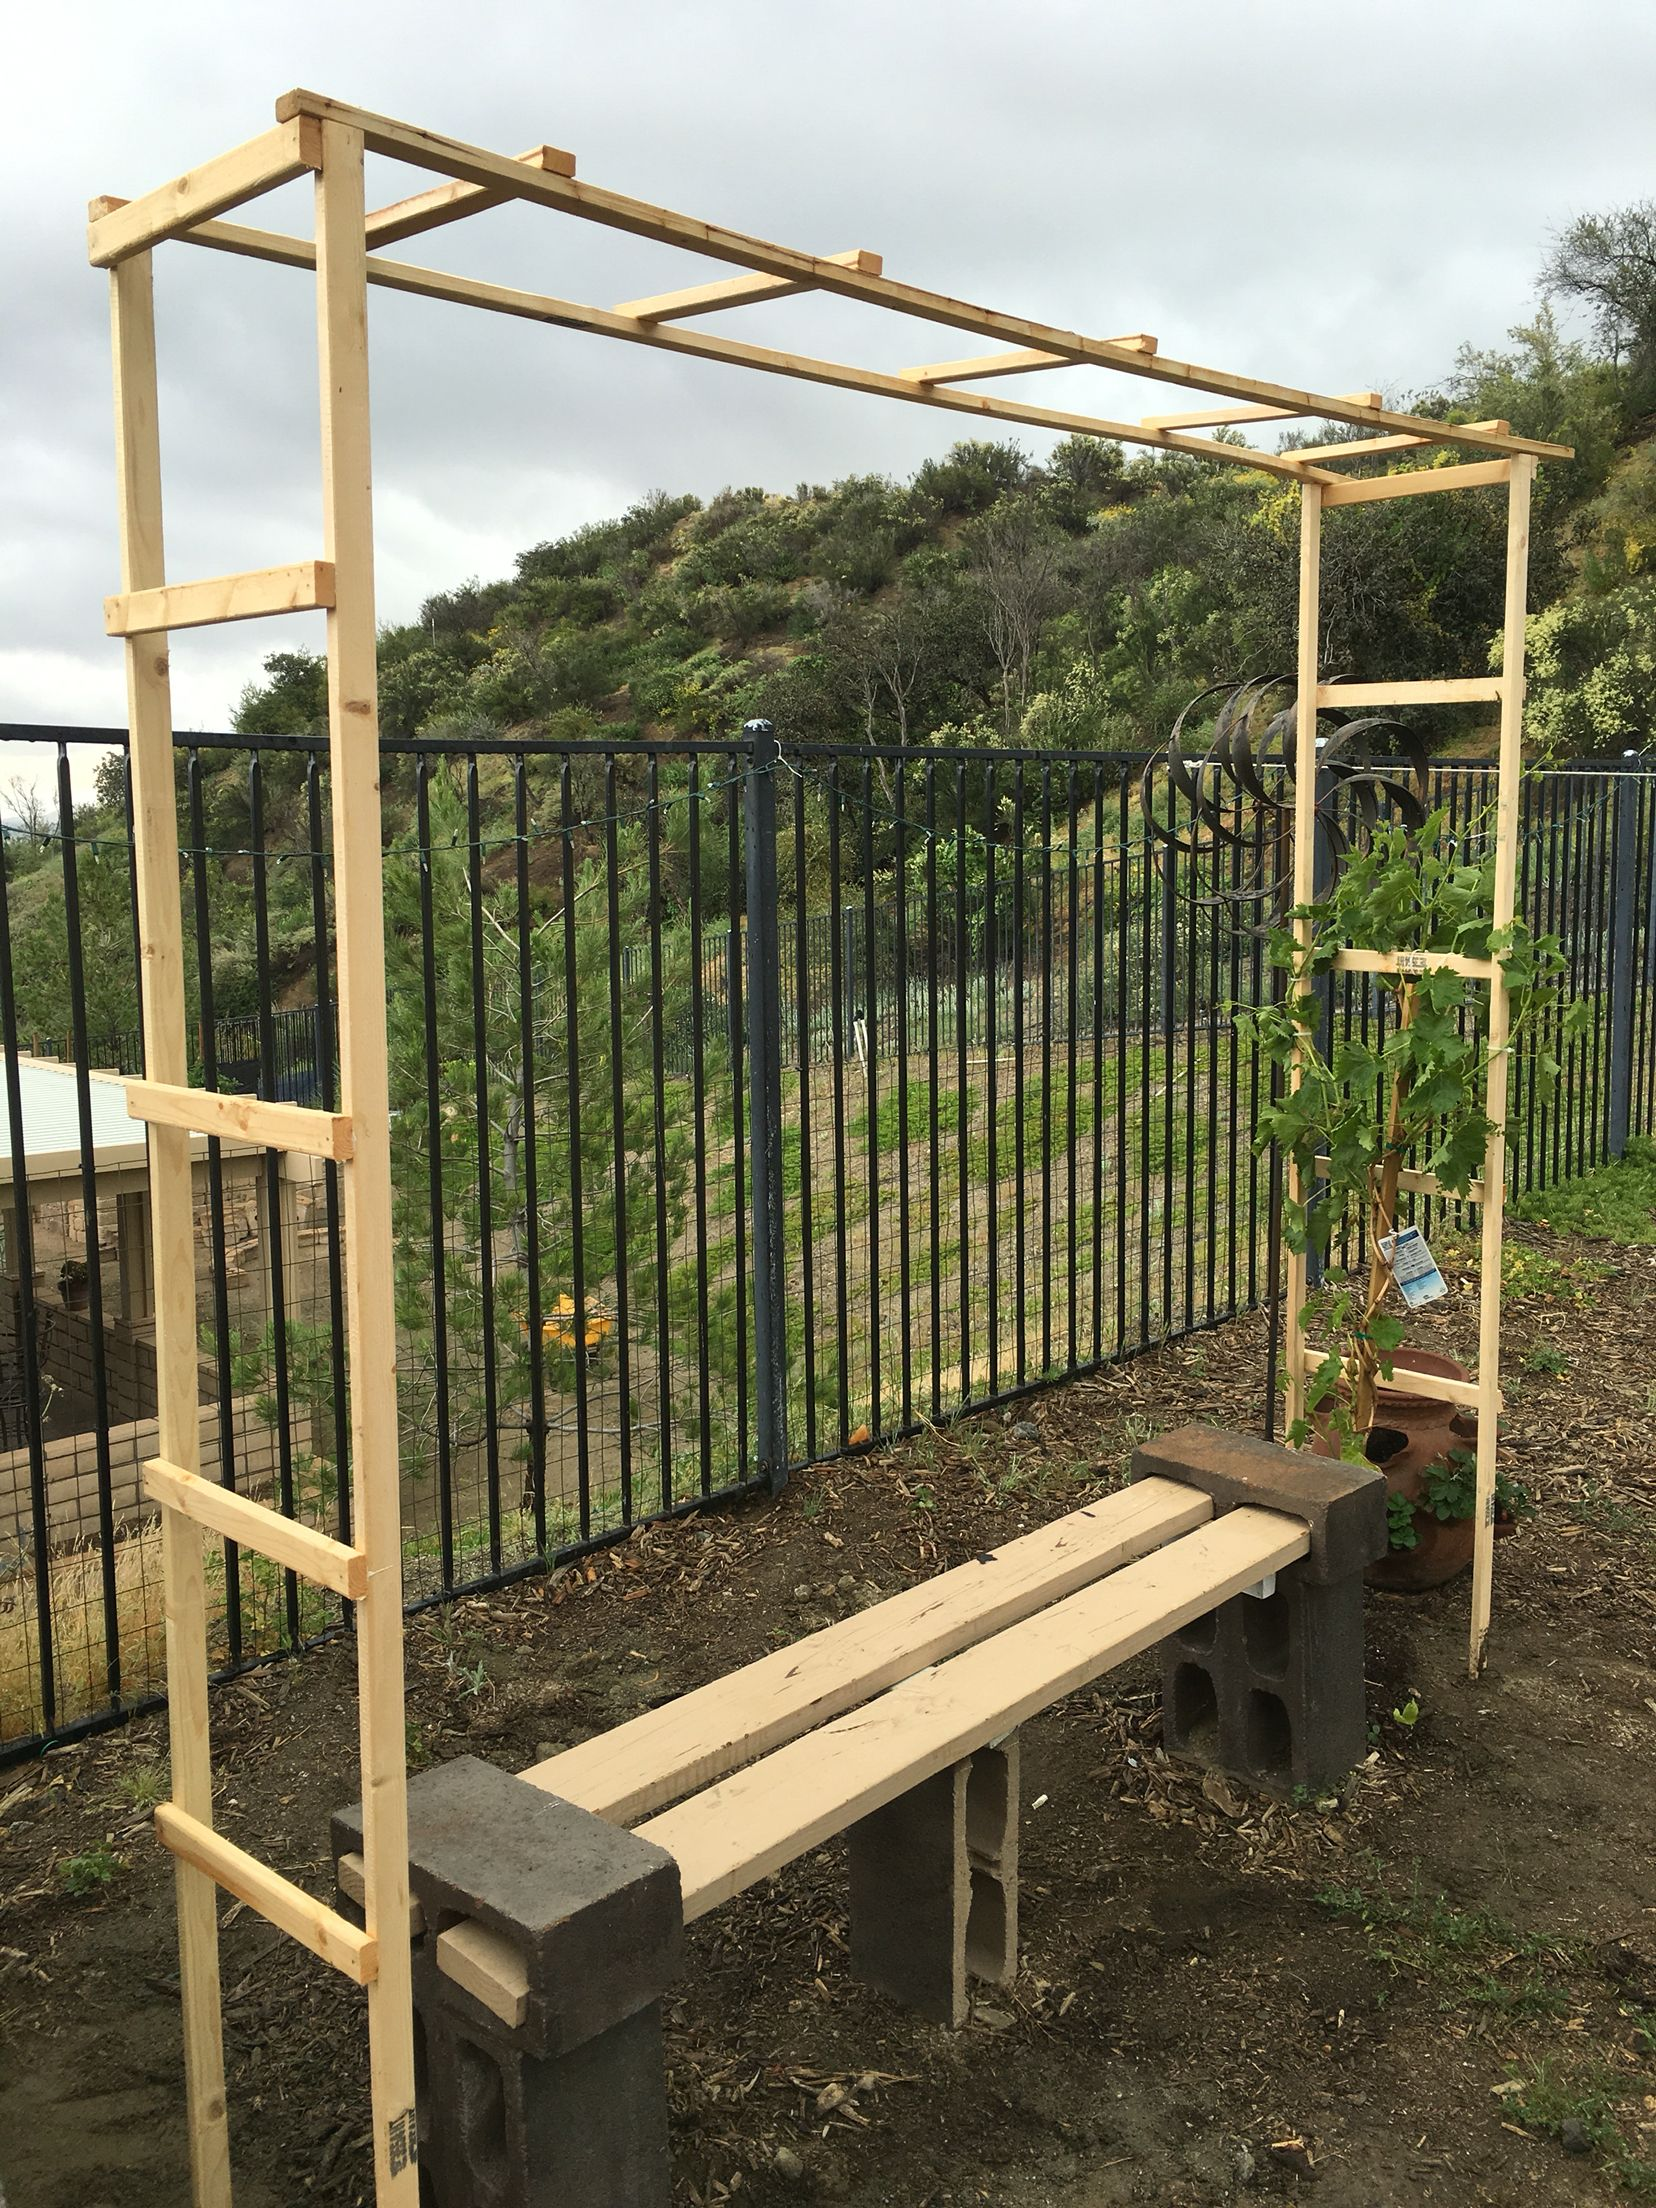 Trellis For My Grape Vine Simple Diy Under $10